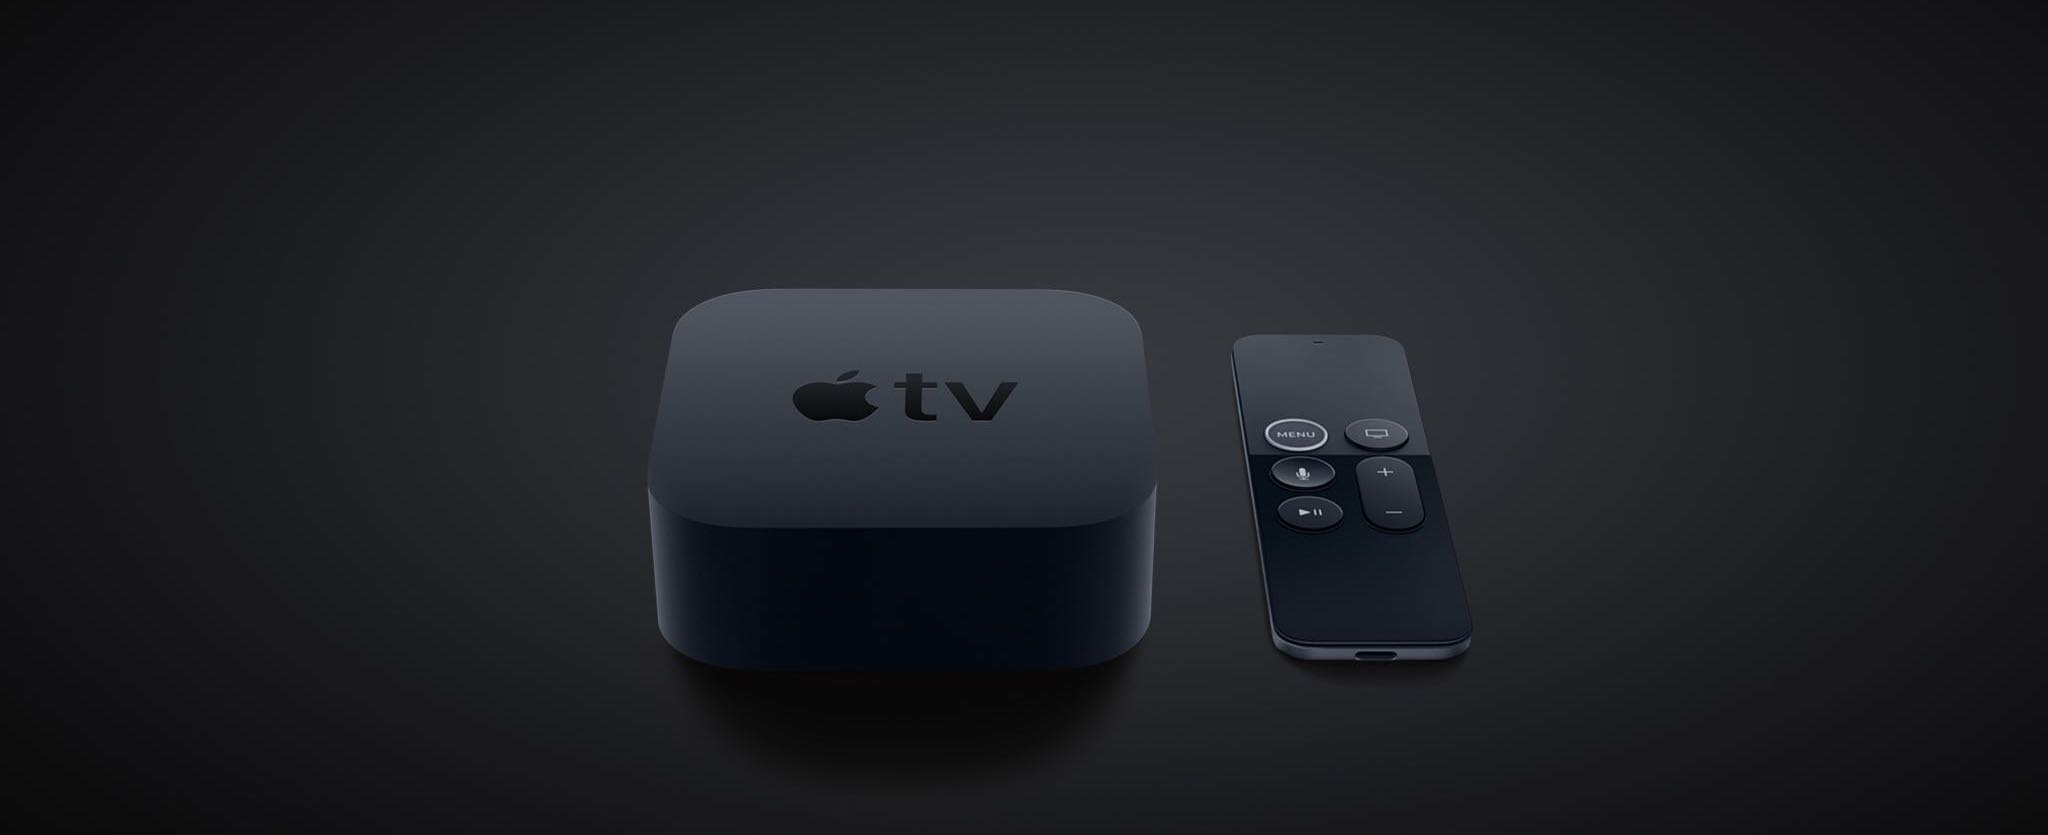 tvOS 14 system requirements Apple TV device compatibility list